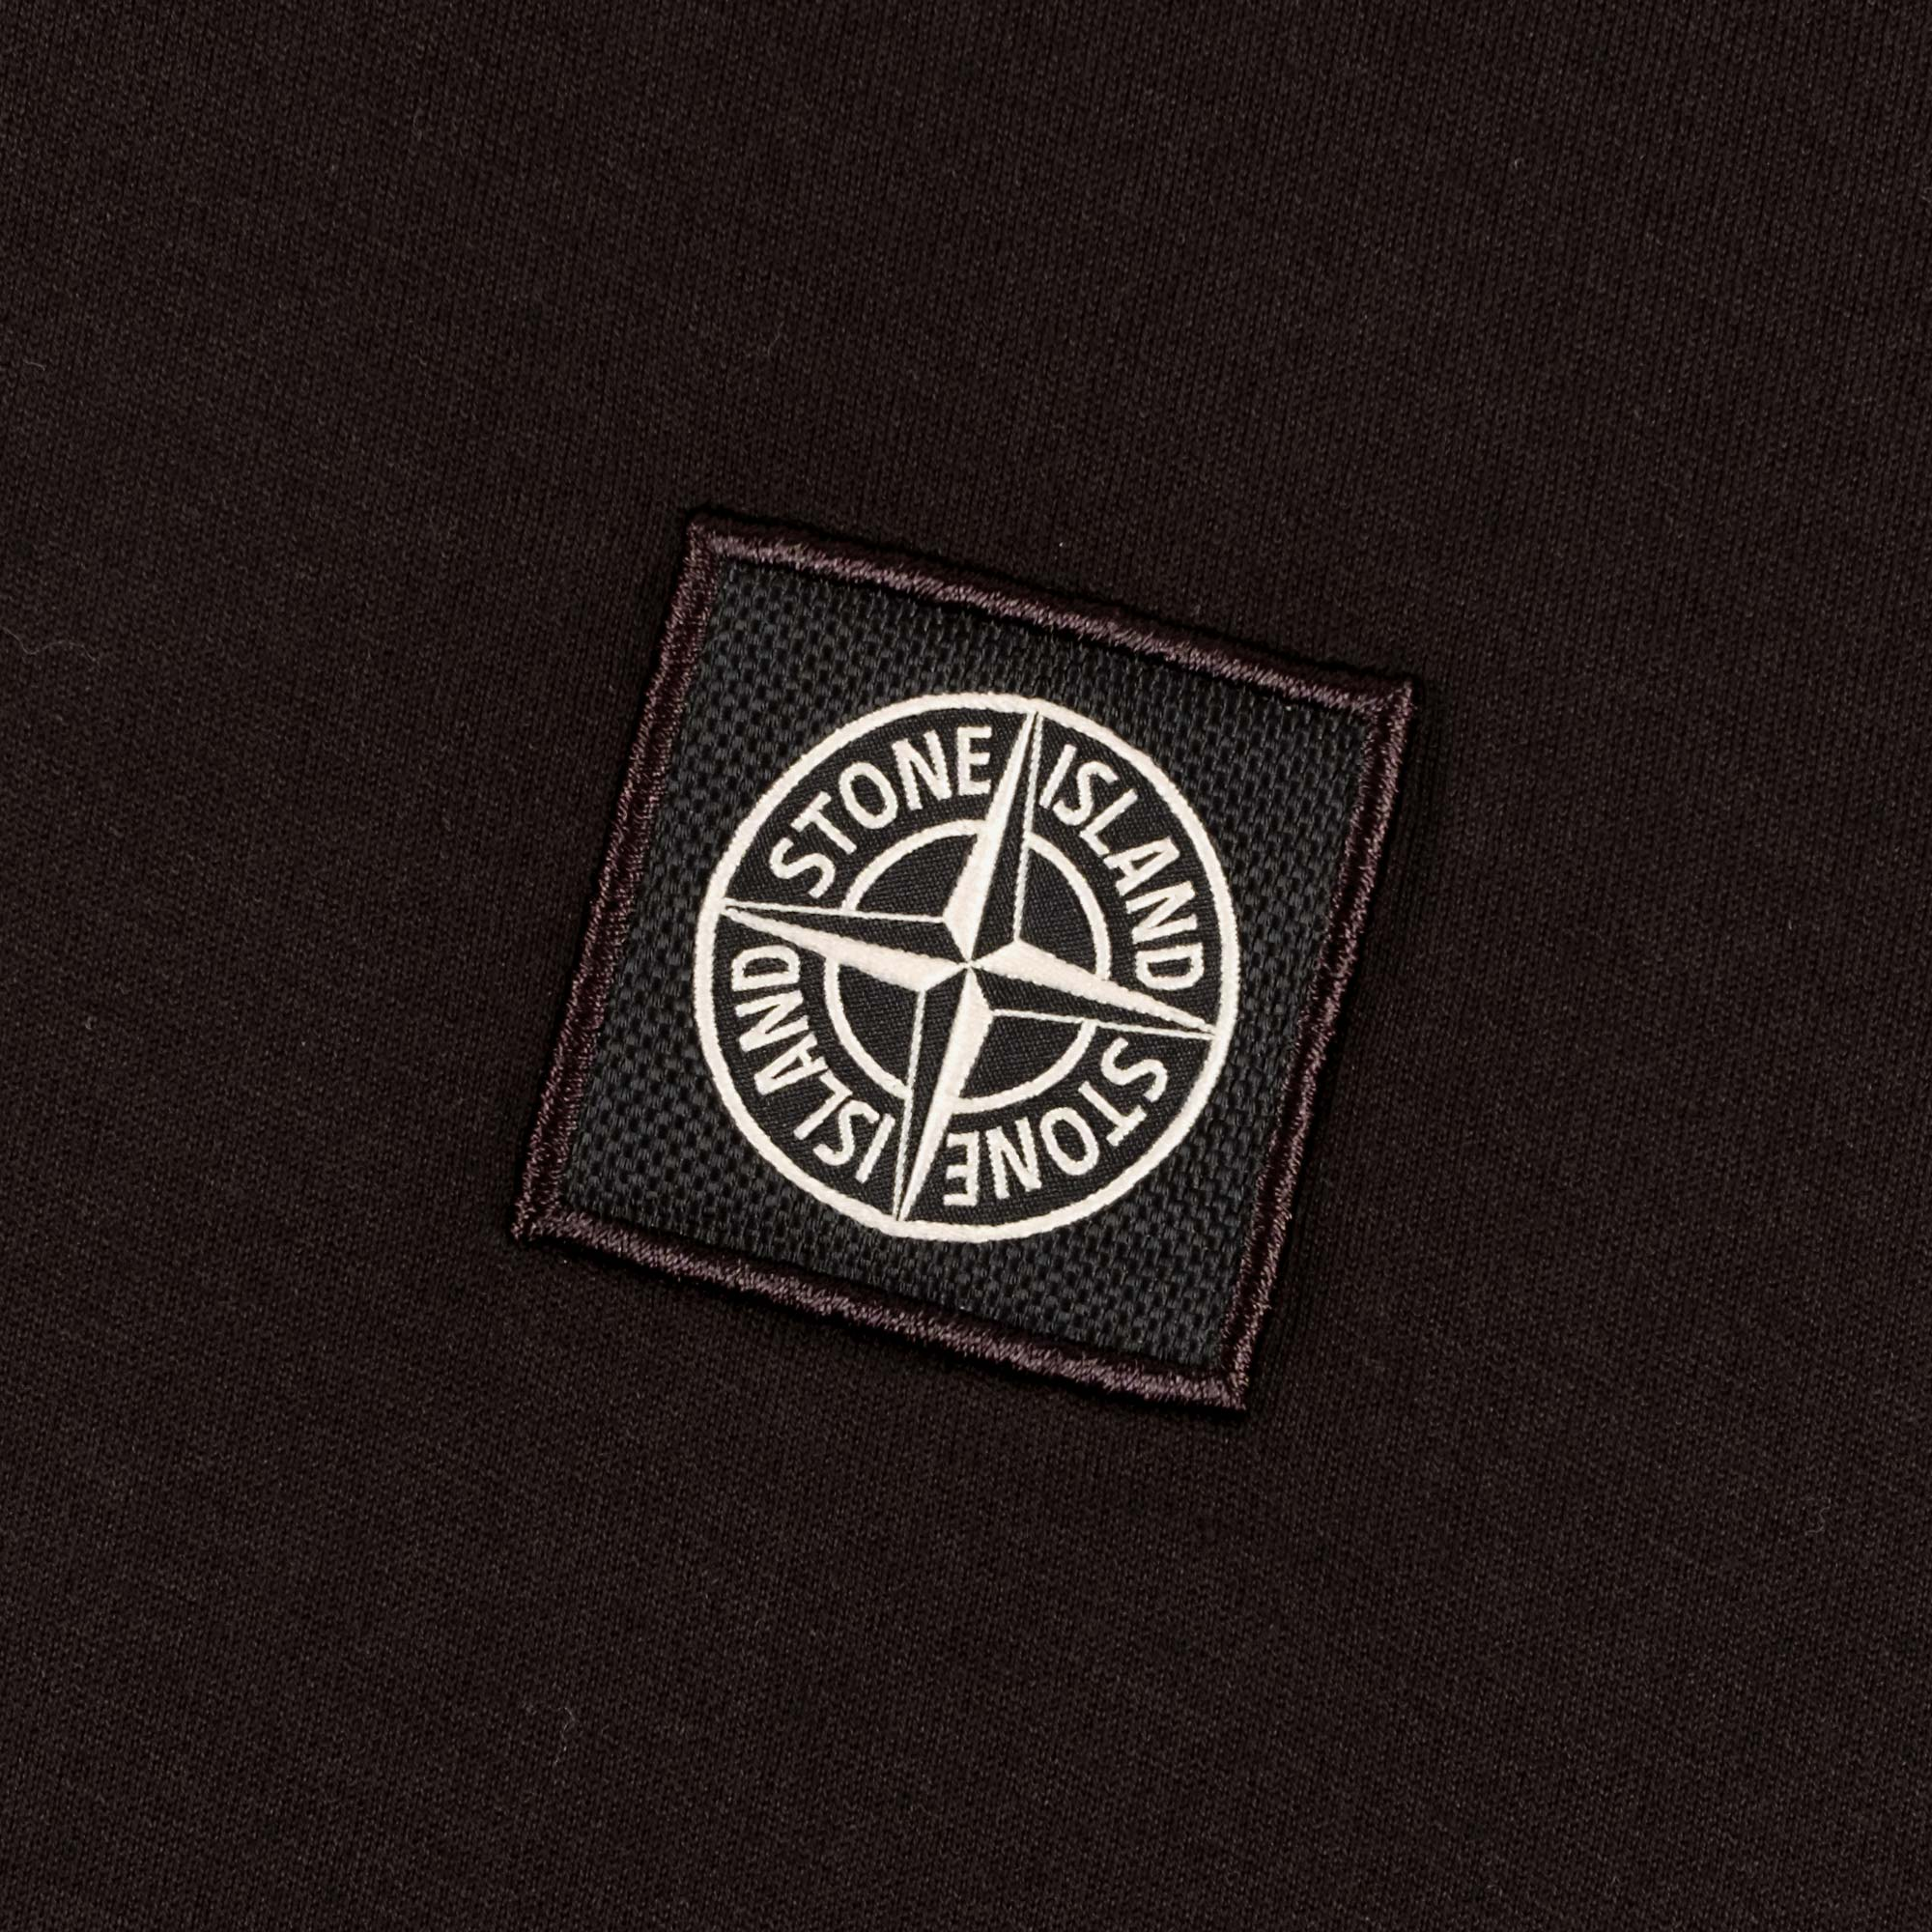 Stone Island Patch Logo T-Shirt 741524113 - Black 2